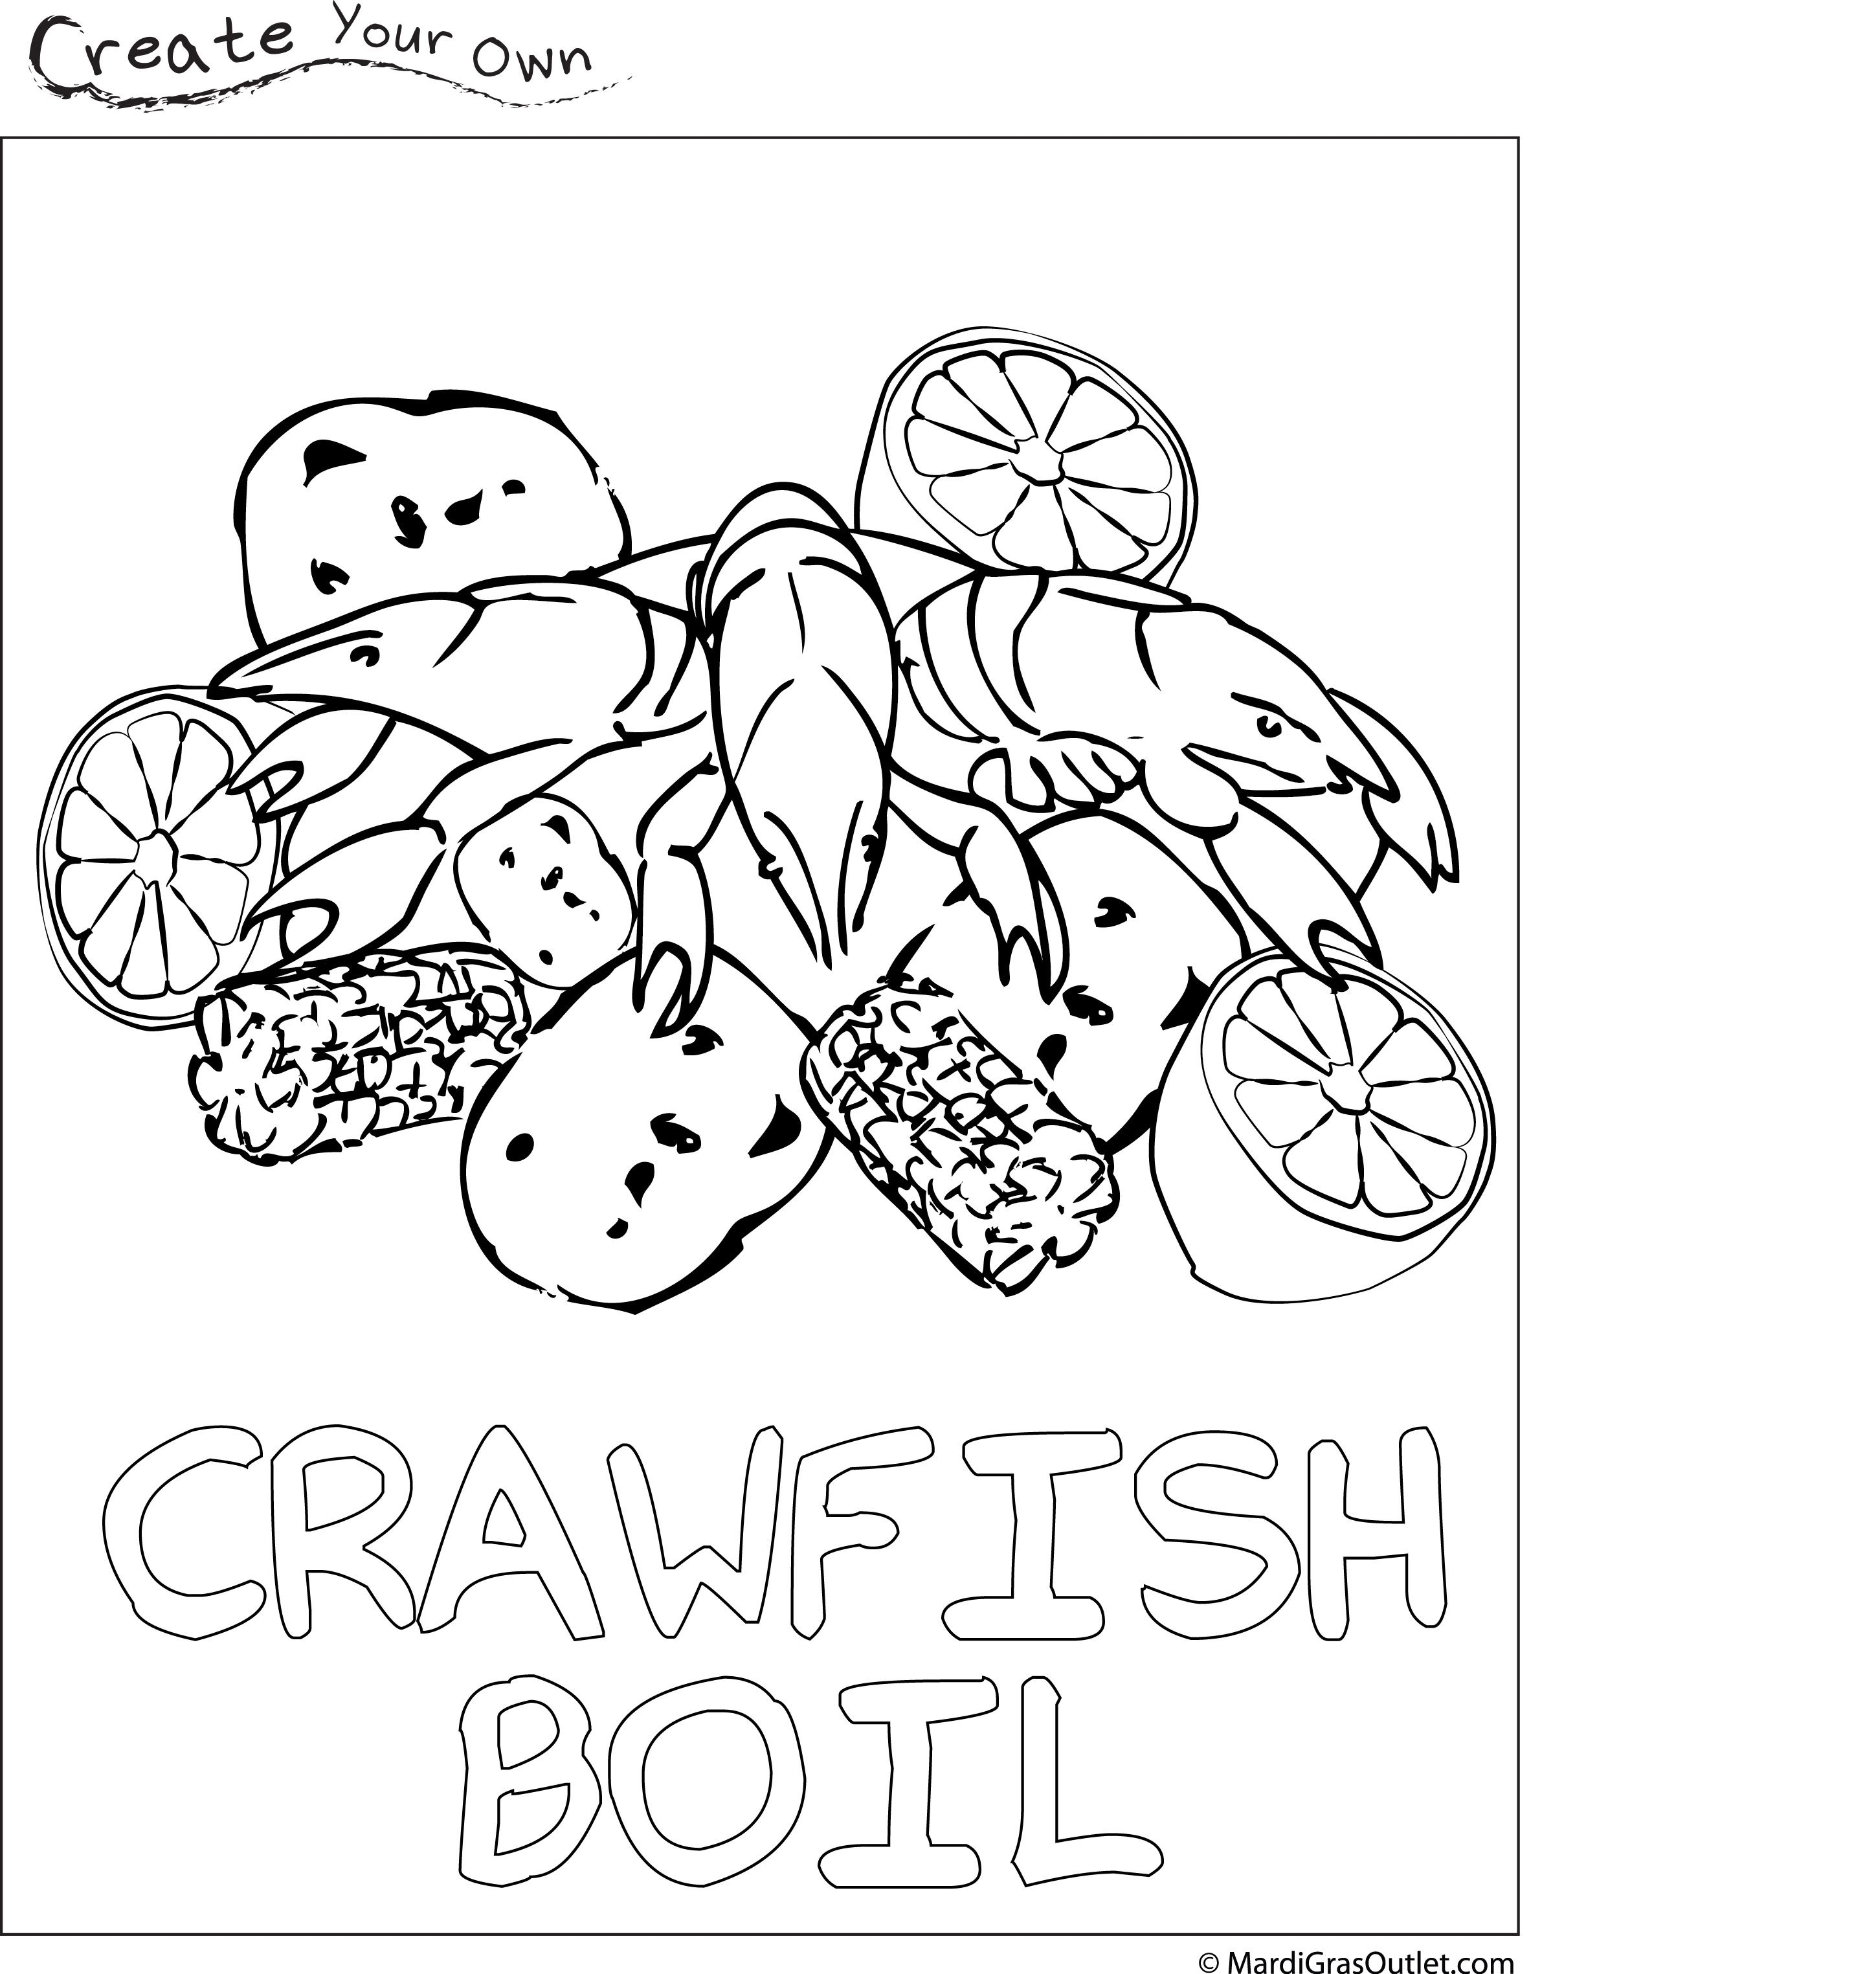 Crawfish Boil Coloring Page Free Download